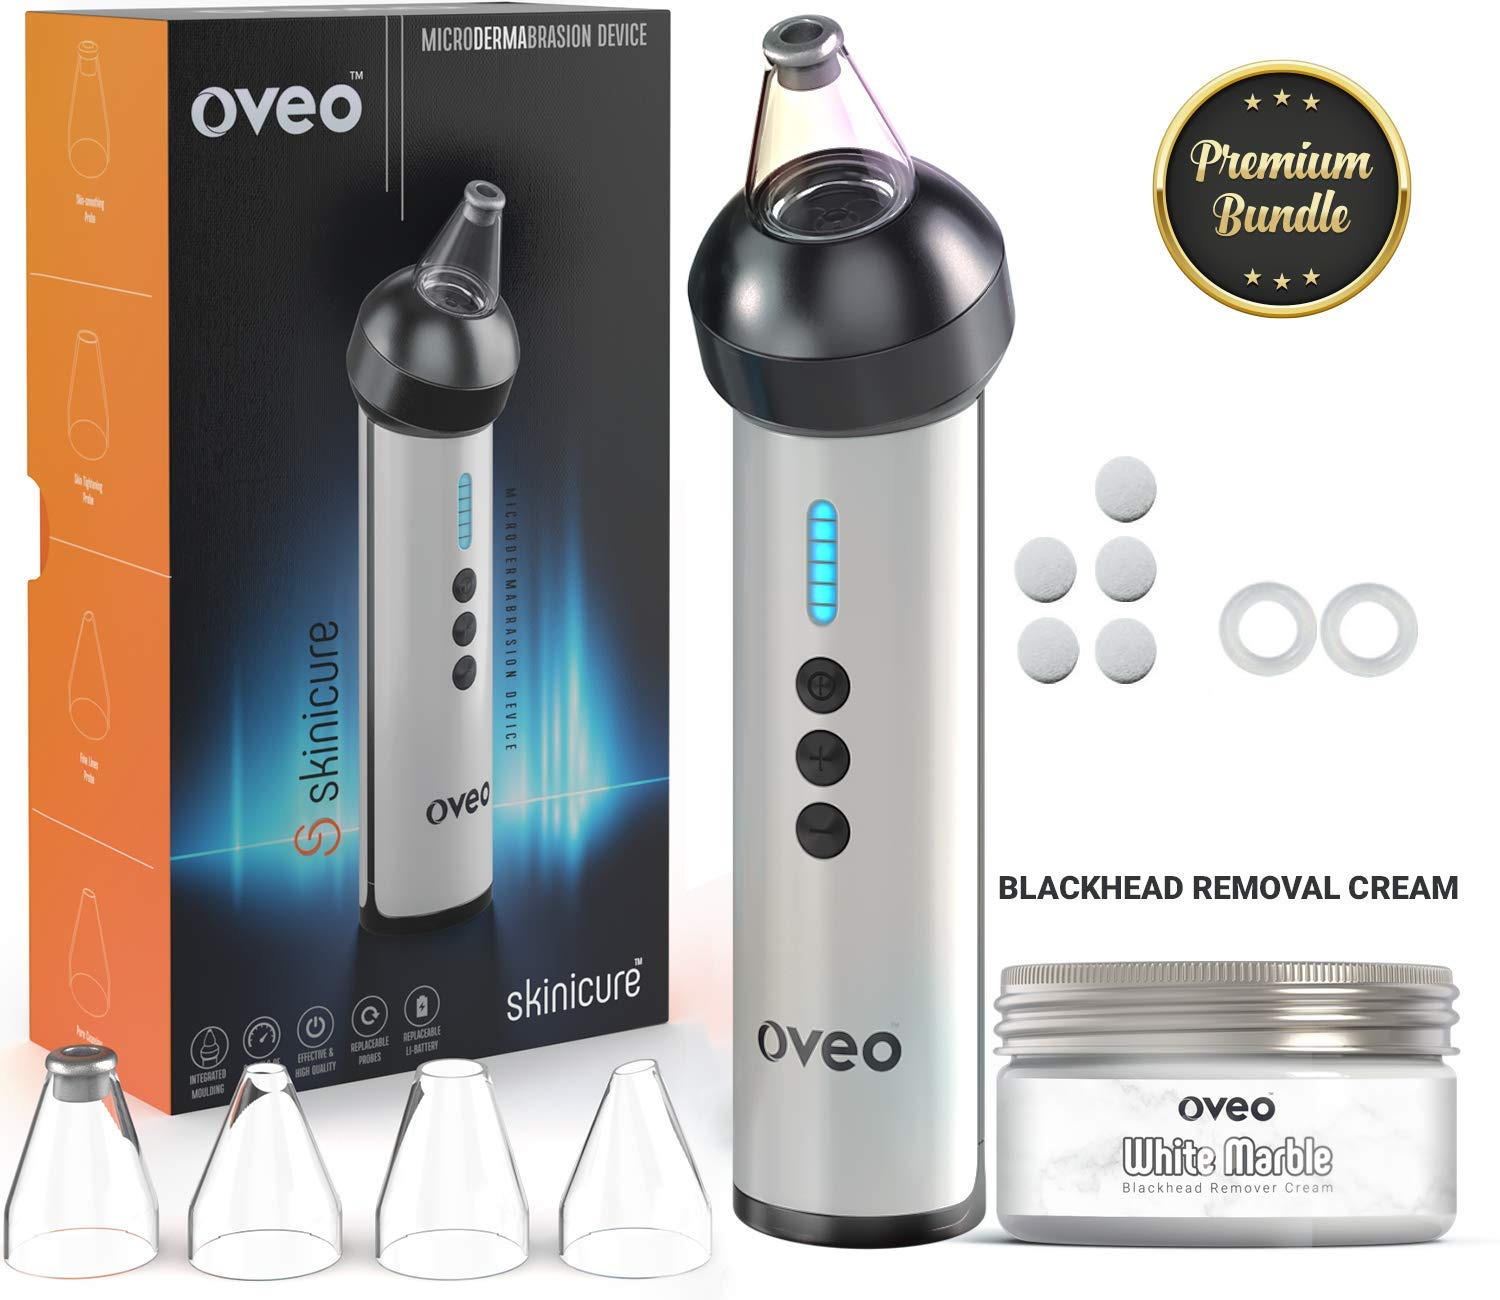 Advanced 1 Pore Vacuum Blackhead Eliminator, Acne Extractor, Pimple Remover, Facial Pore Cleanser – Comedo Suction Diamond Microdermabrasion Device by Oveo – Anti Aging Rechargeable and Portable